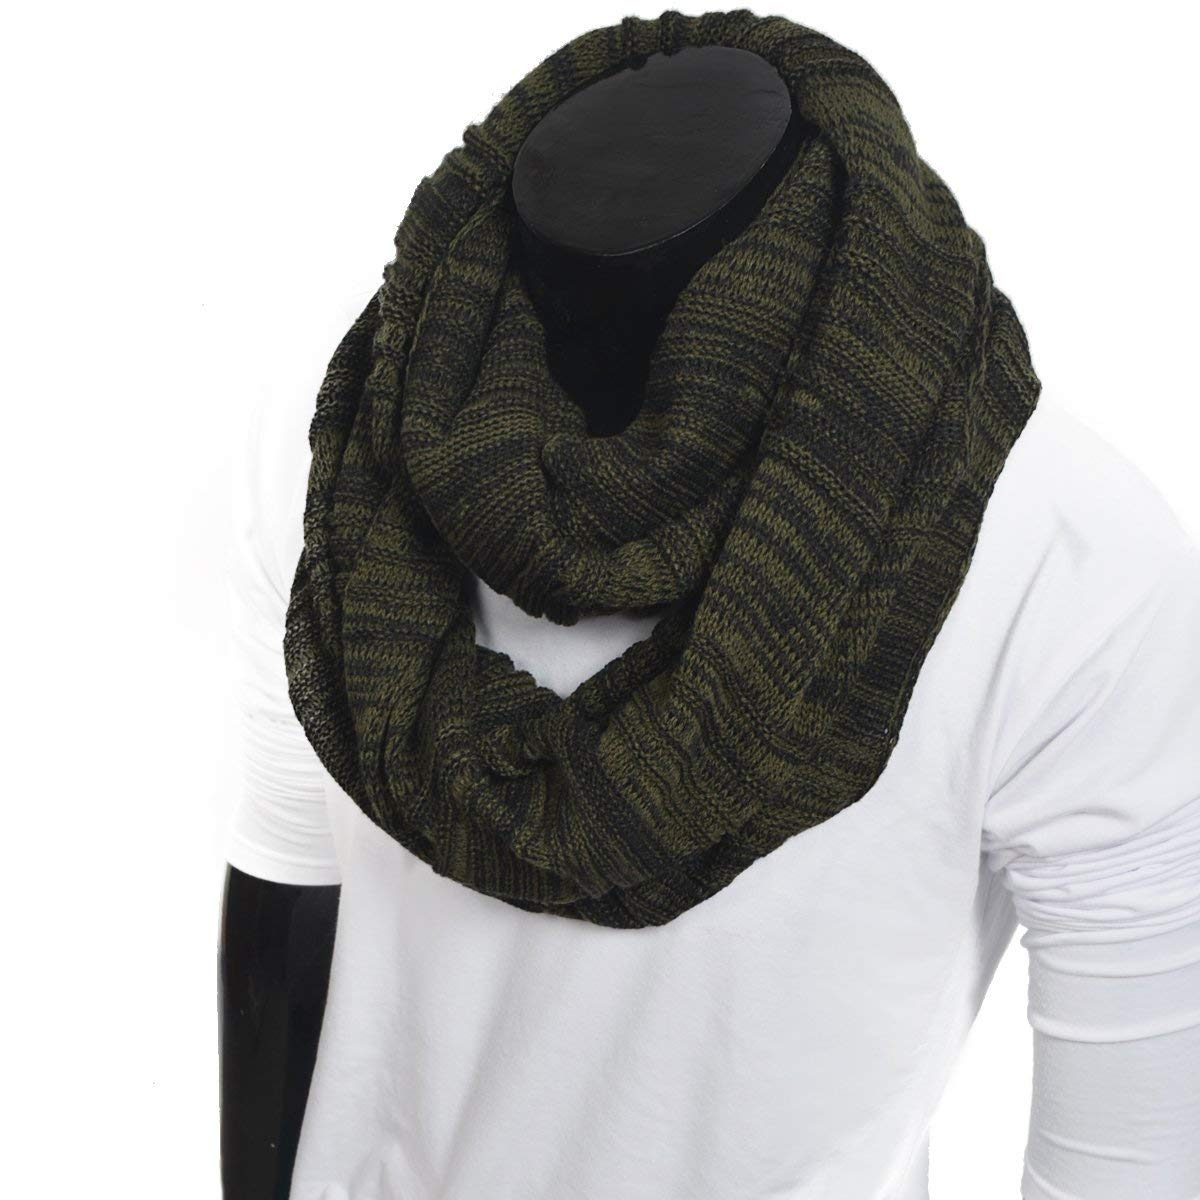 FORBUSITE Chic Men Knit Winter Infinity Scarf Large E5001b-zs